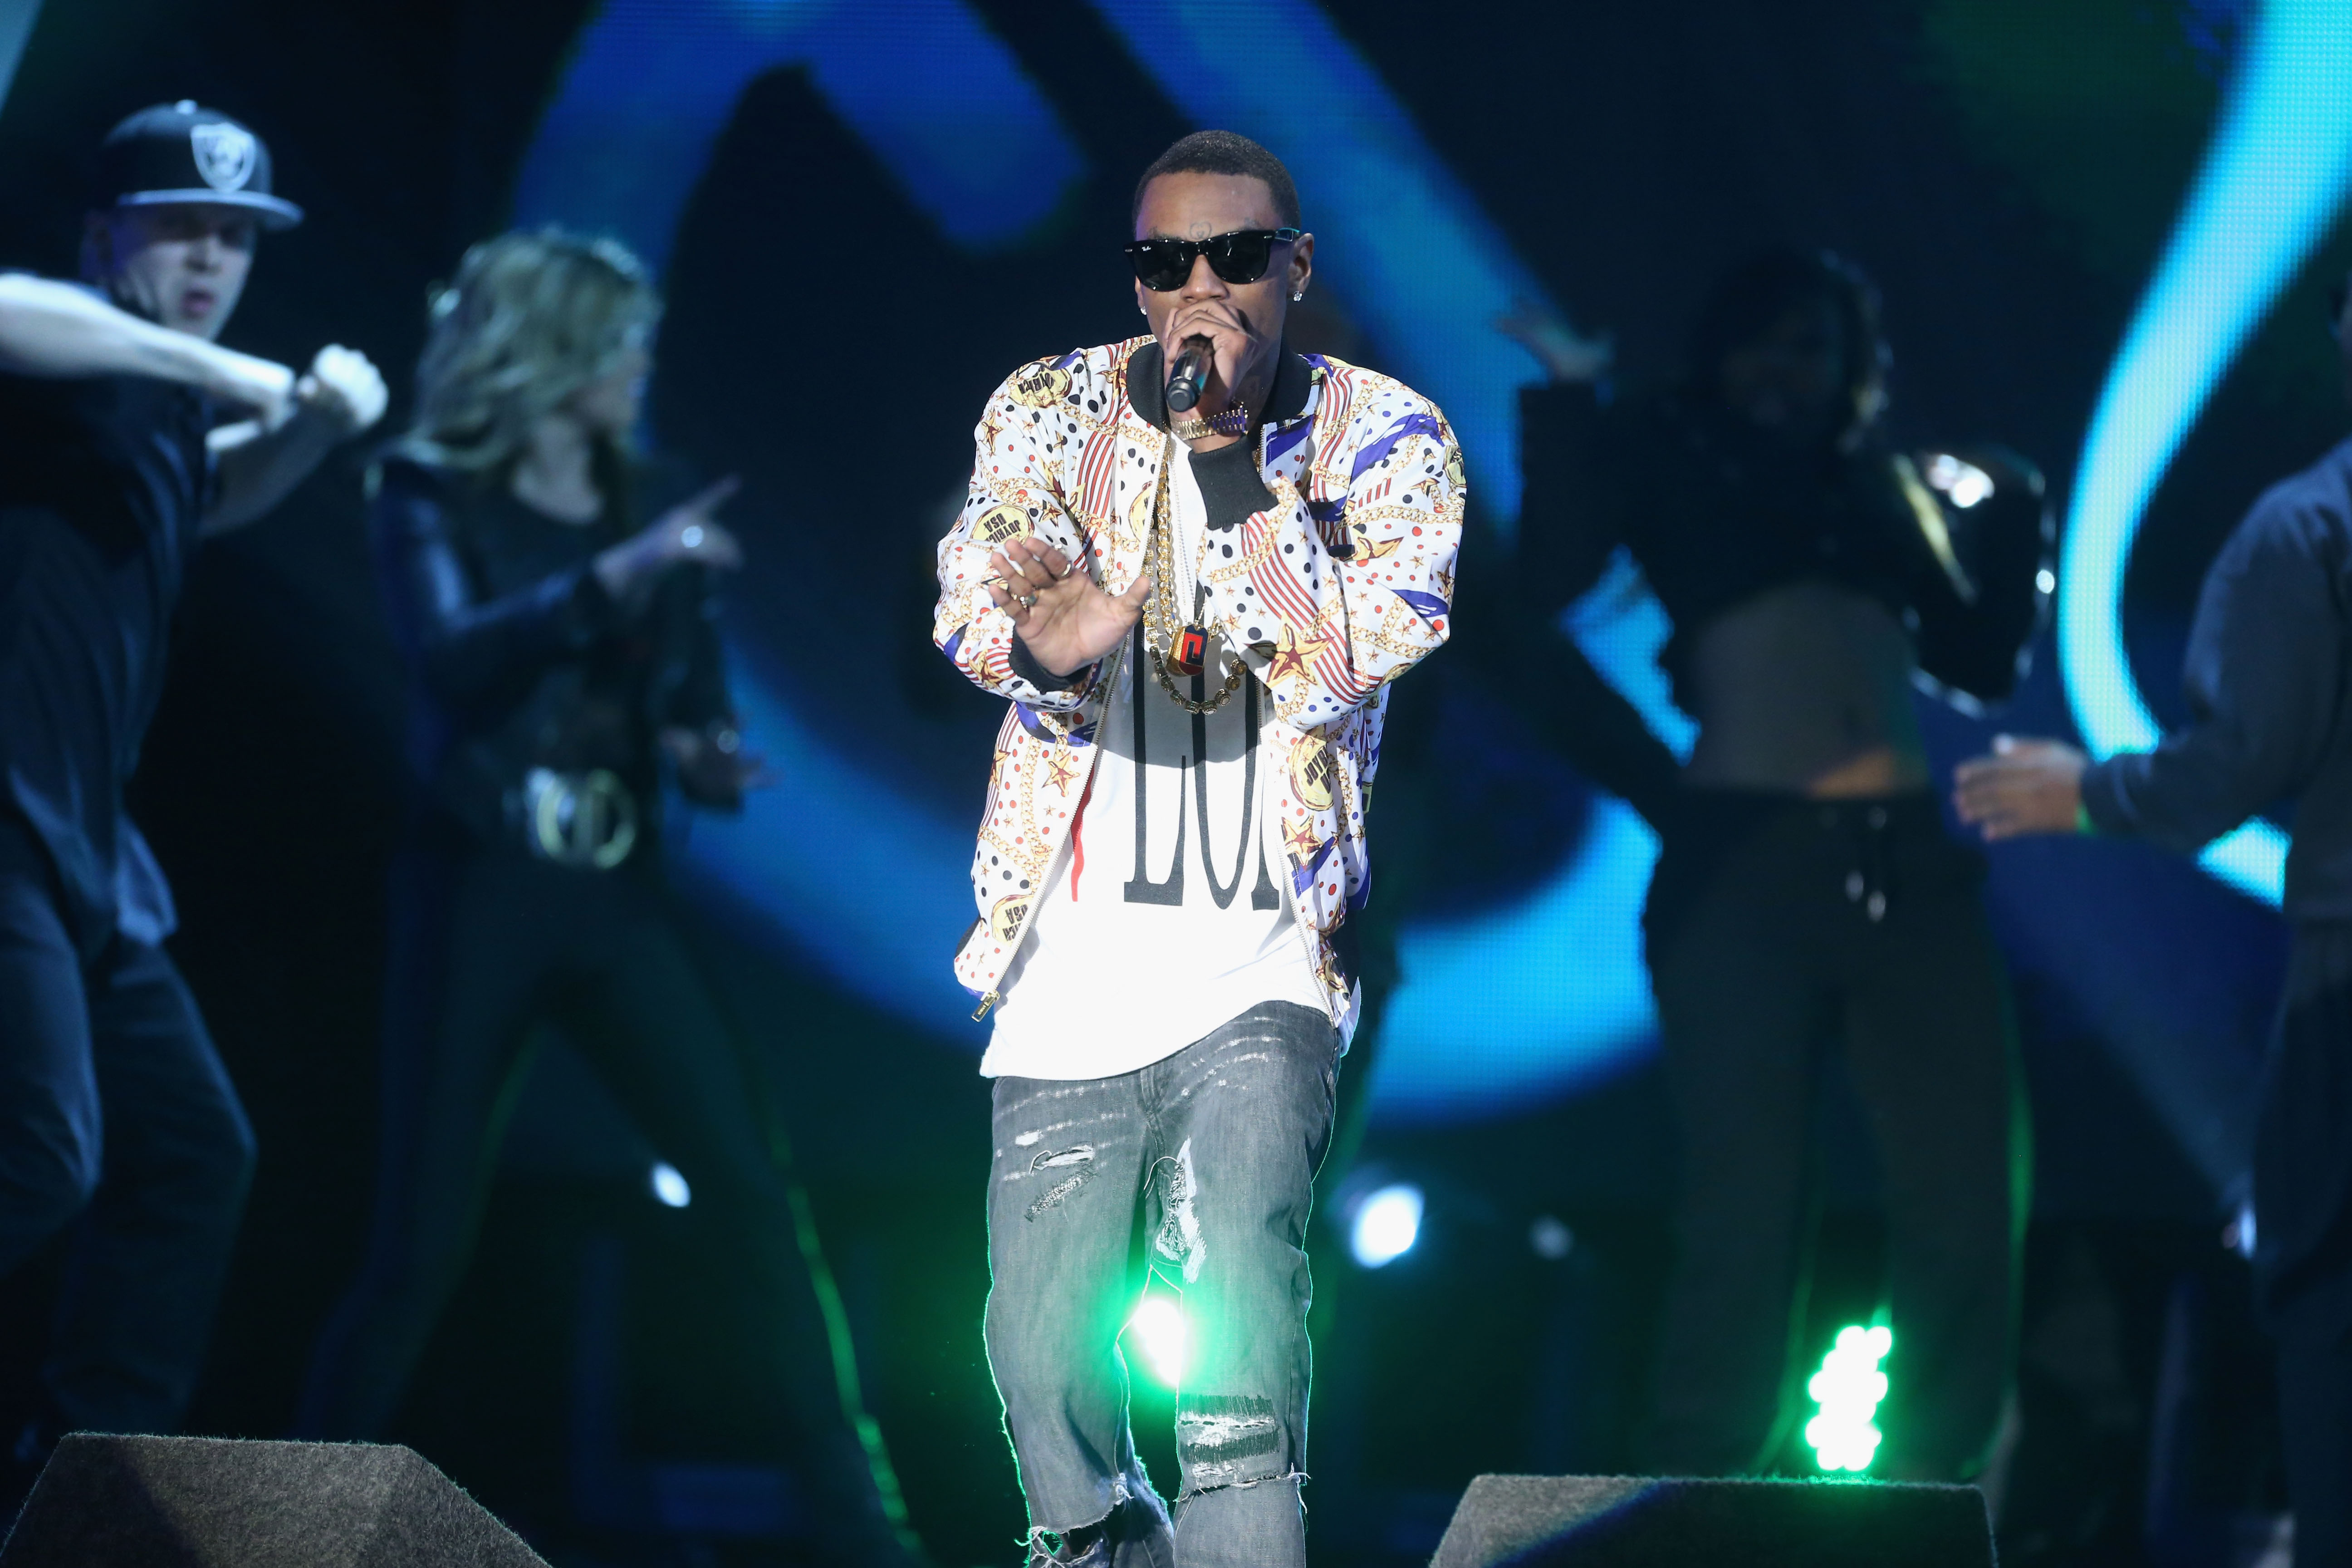 Soulja Boy performs onstage at the 3rd Annual Streamy Awards at Hollywood Palladium on February 17, 2013 in Hollywood, California.